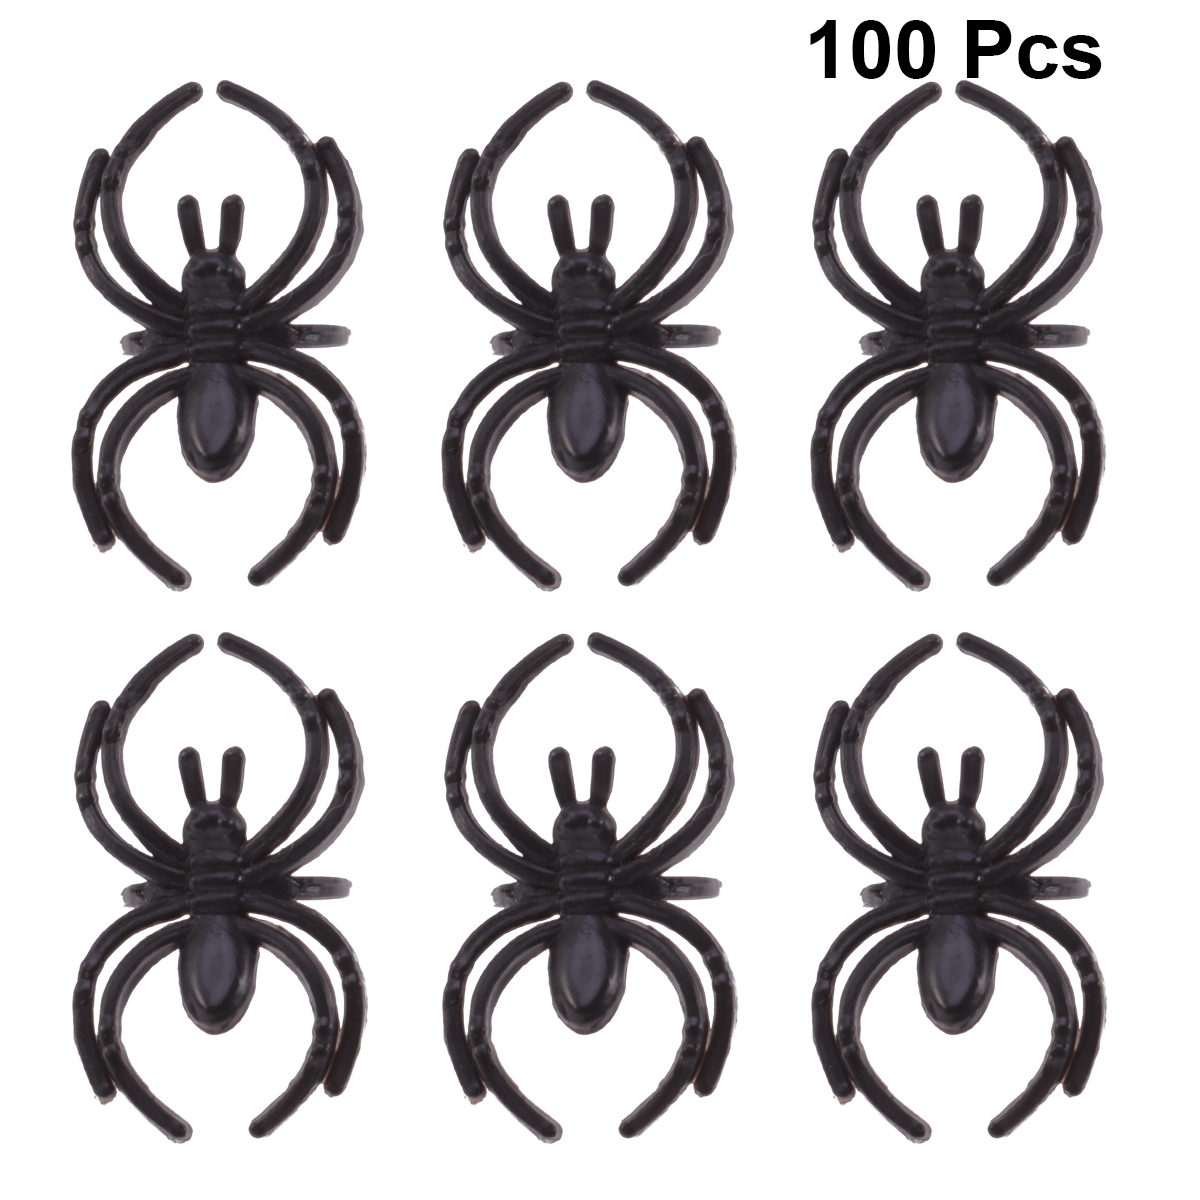 Scary Spiders Pk 8 Halloween Decorations Spooky party Accessories